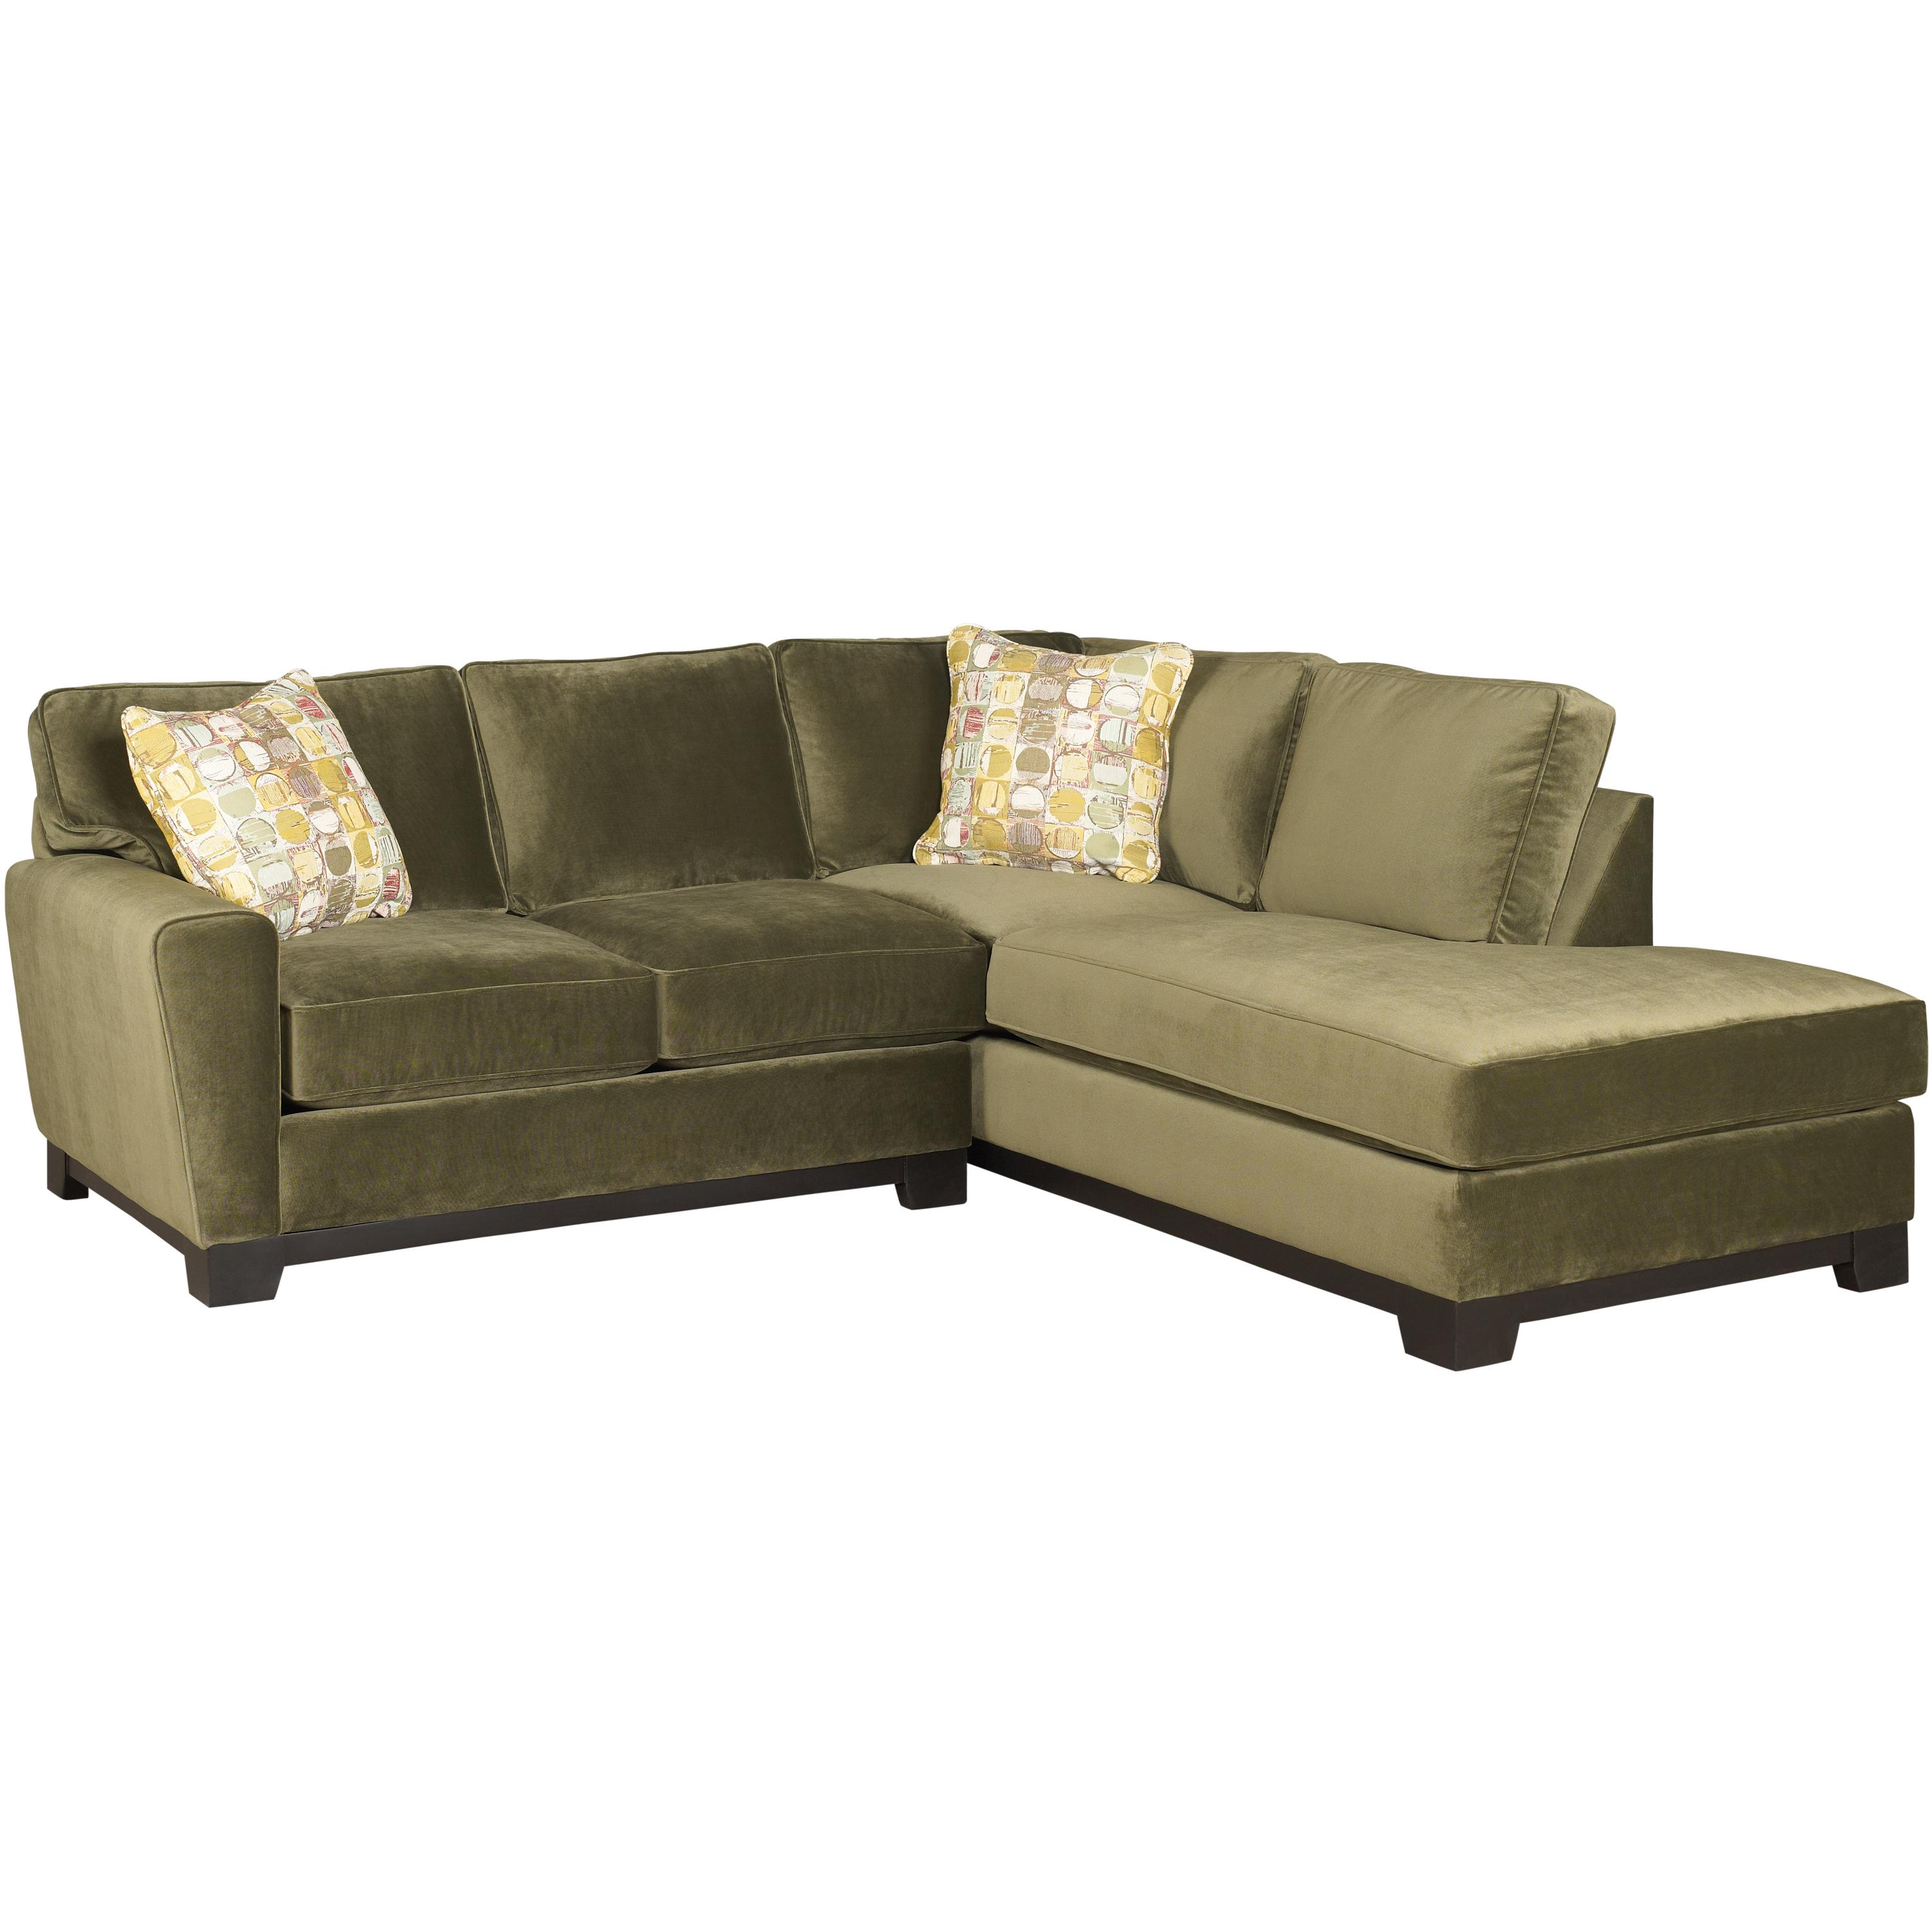 jonathan louis sofa sectional luxury leather collection polaris taurus casual with block feet